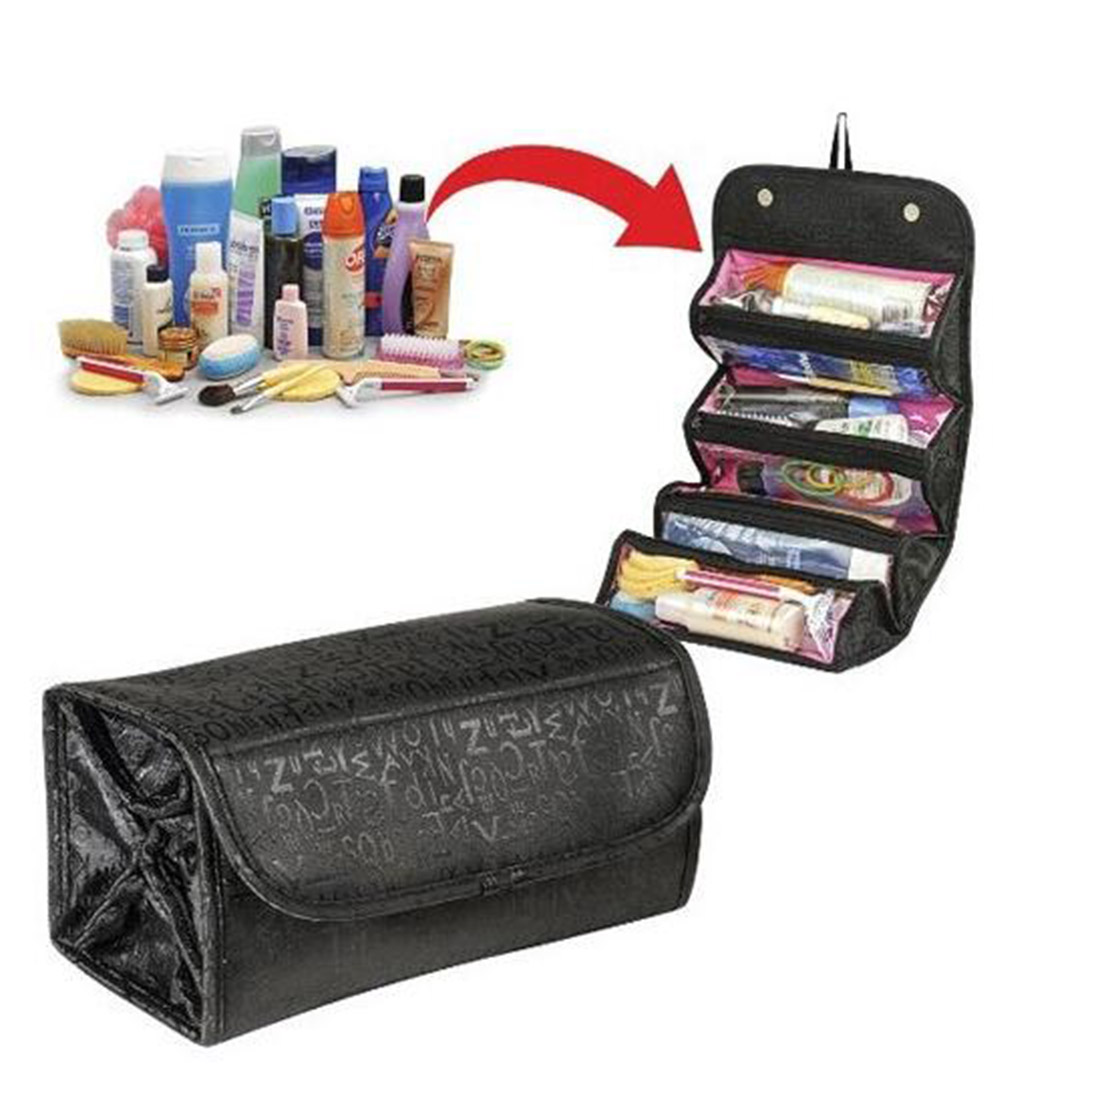 New style Practical High Quality Cheap Roll Cosmetics Organiser Makeup Bag Toiletries Pocket Compartment Travel Bags bag in bag organizer